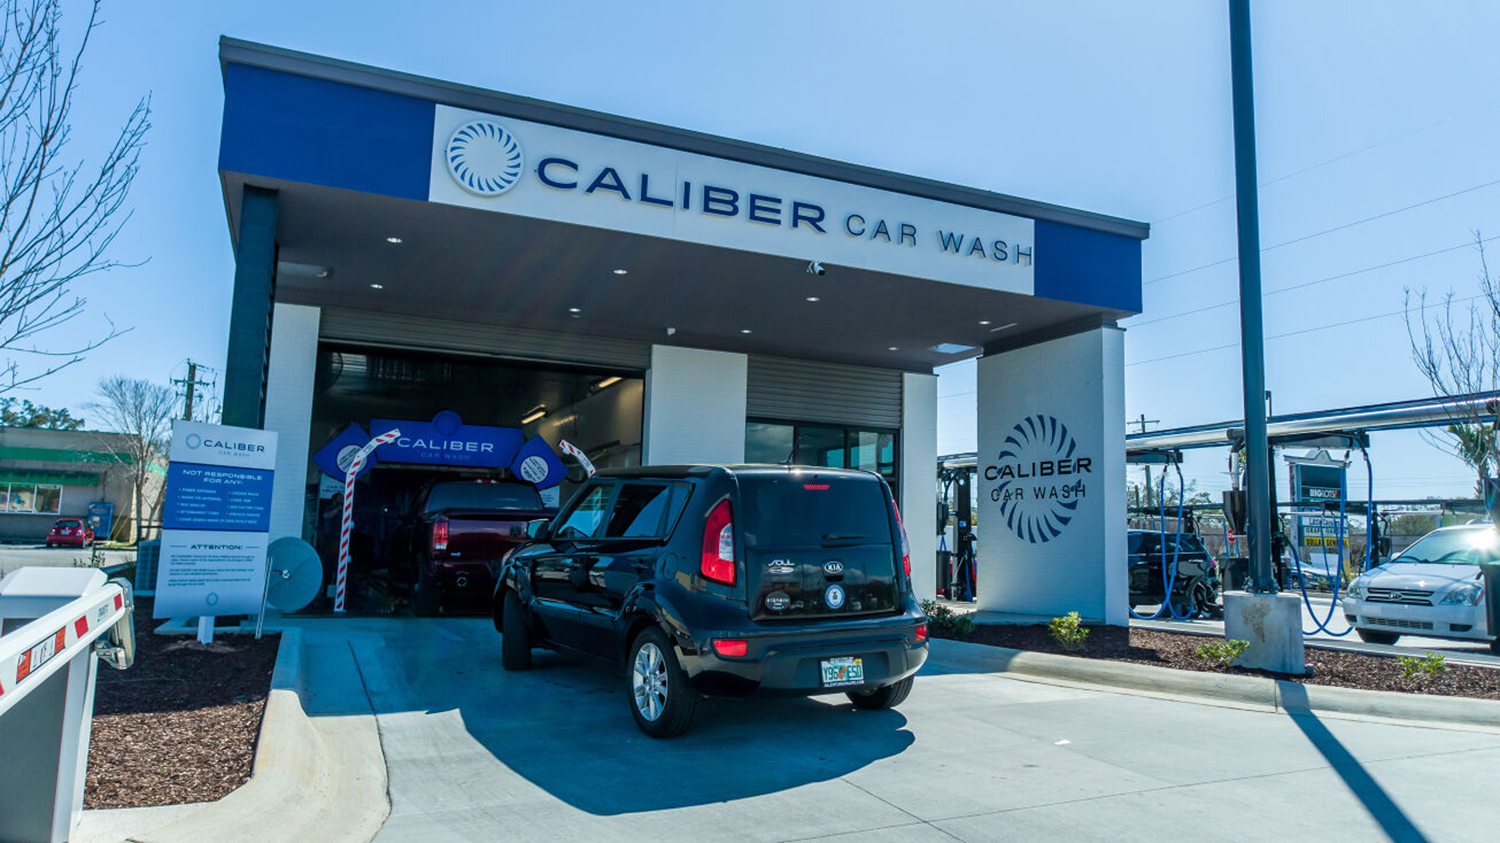 RealSource Arranges Pre-Sale of Brand-New Caliber Car Wash in Winter Park, Florida for $4.06 Million